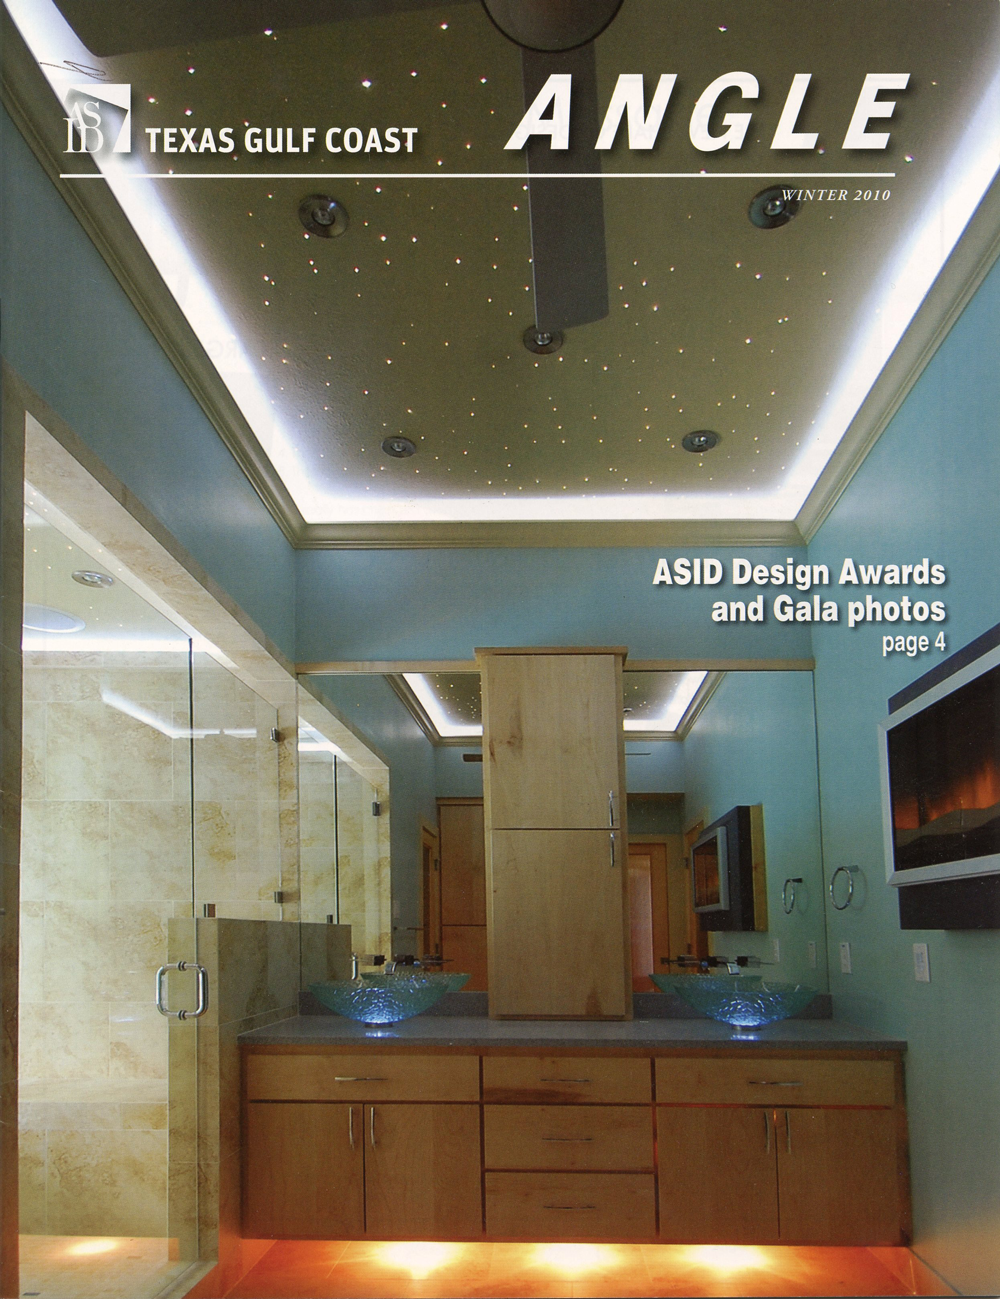 ASID-Angle--2010-ASID-Awards-Issue003.png